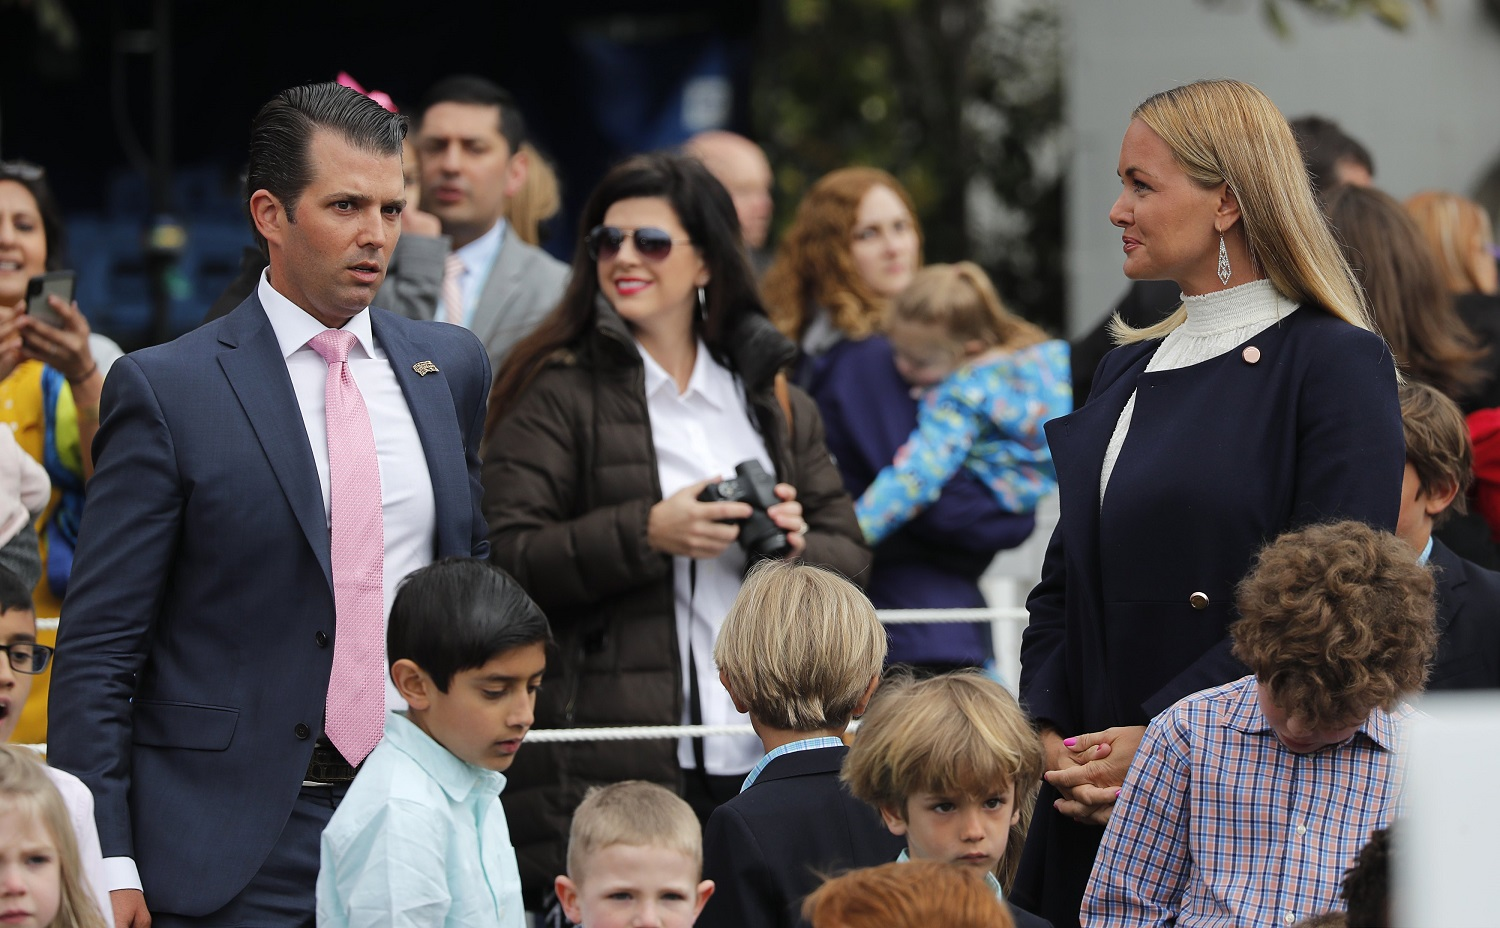 Donald Trump Jr stands near his estranged wife Vanessa, who recently filed for divorce, as they attend the annual White House Easter Egg Roll with their children on the South Lawn of the White House in Washington, U.S., April 2, 2018. REUTERS/Carlos Barria